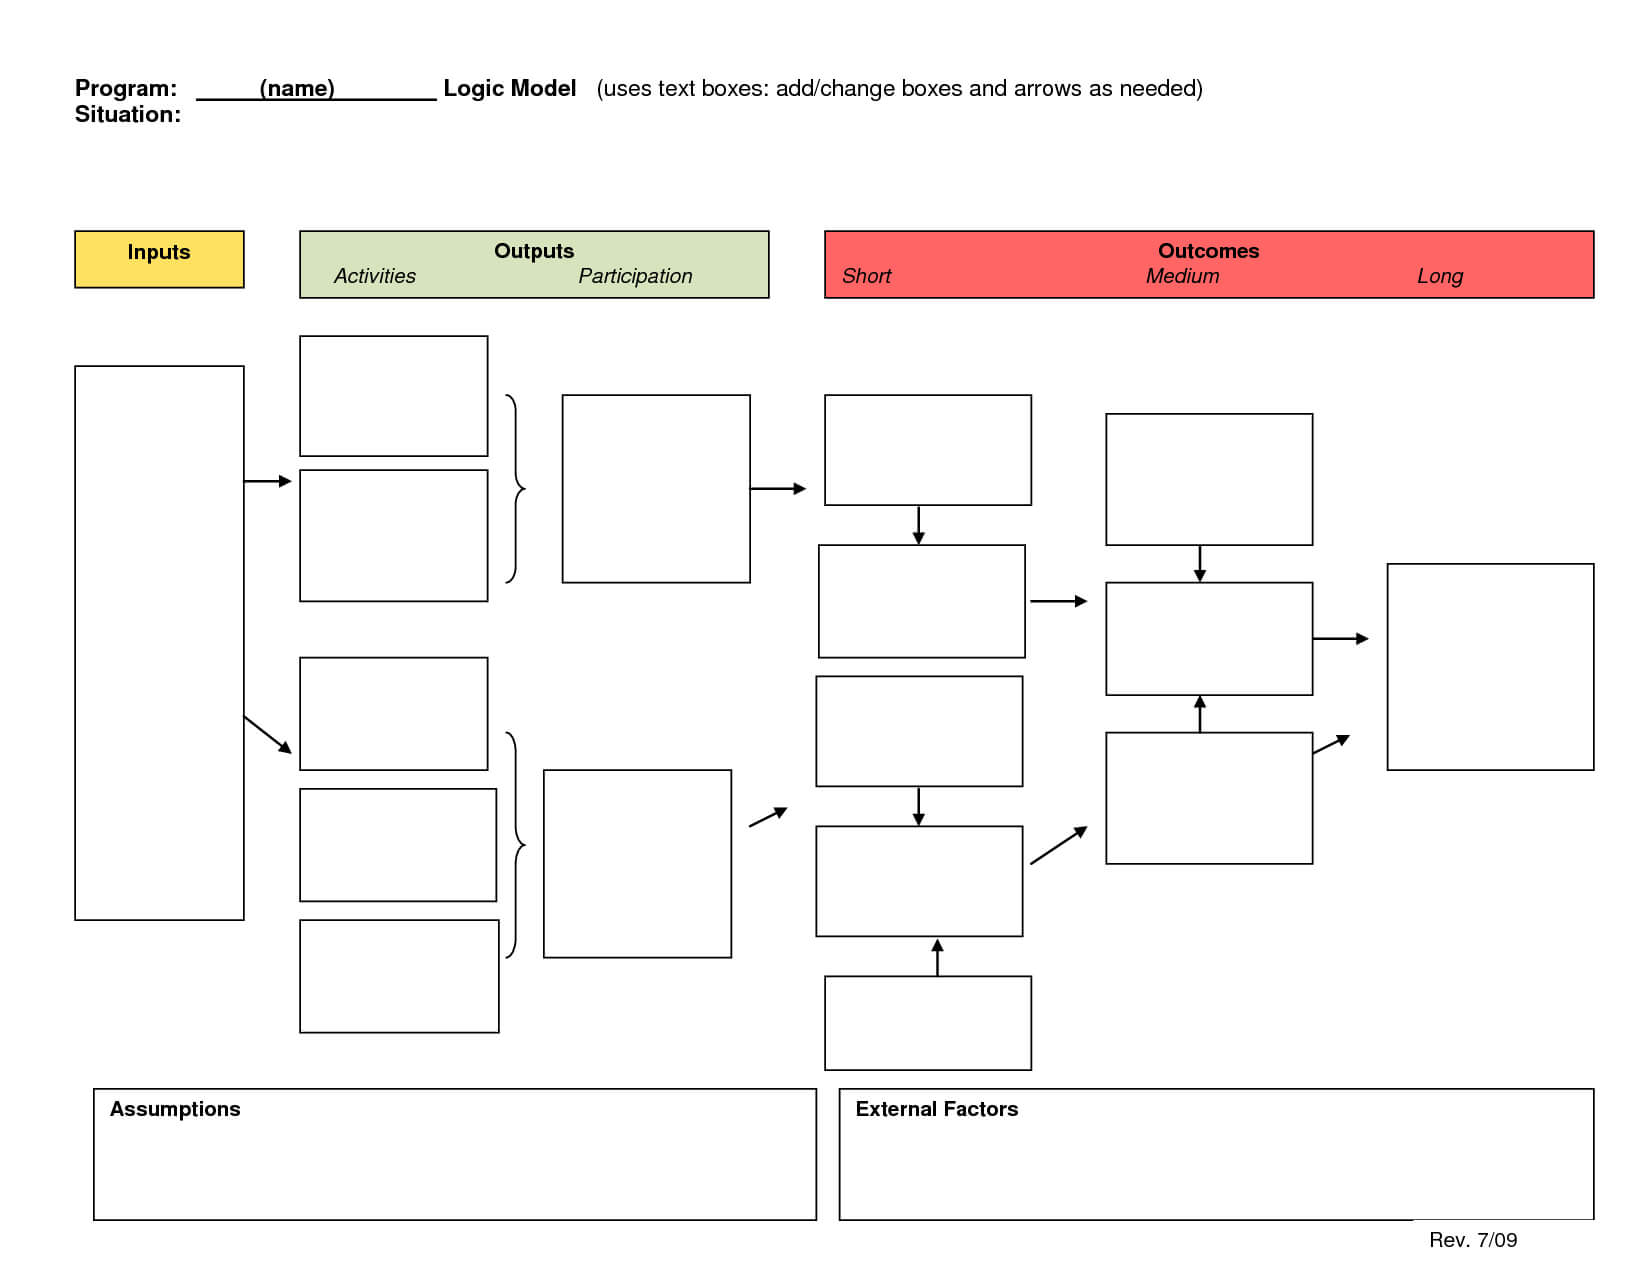 Logic Model Template Word Document – Kenna Pertaining To Logic Model Template Word